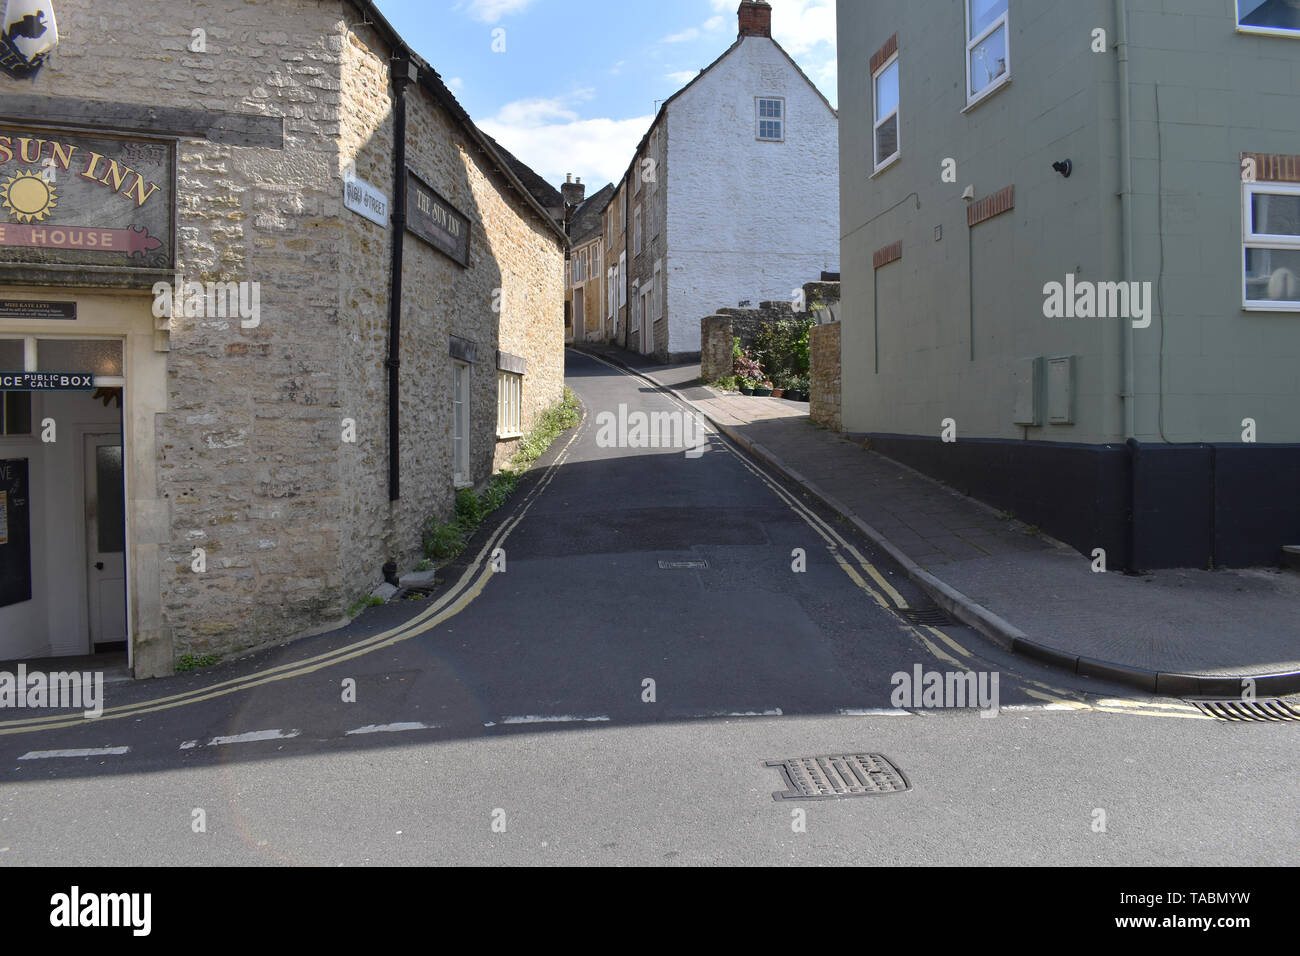 The corner of High St and St Catherine's Street in Frome, Somerset, UK - Stock Image